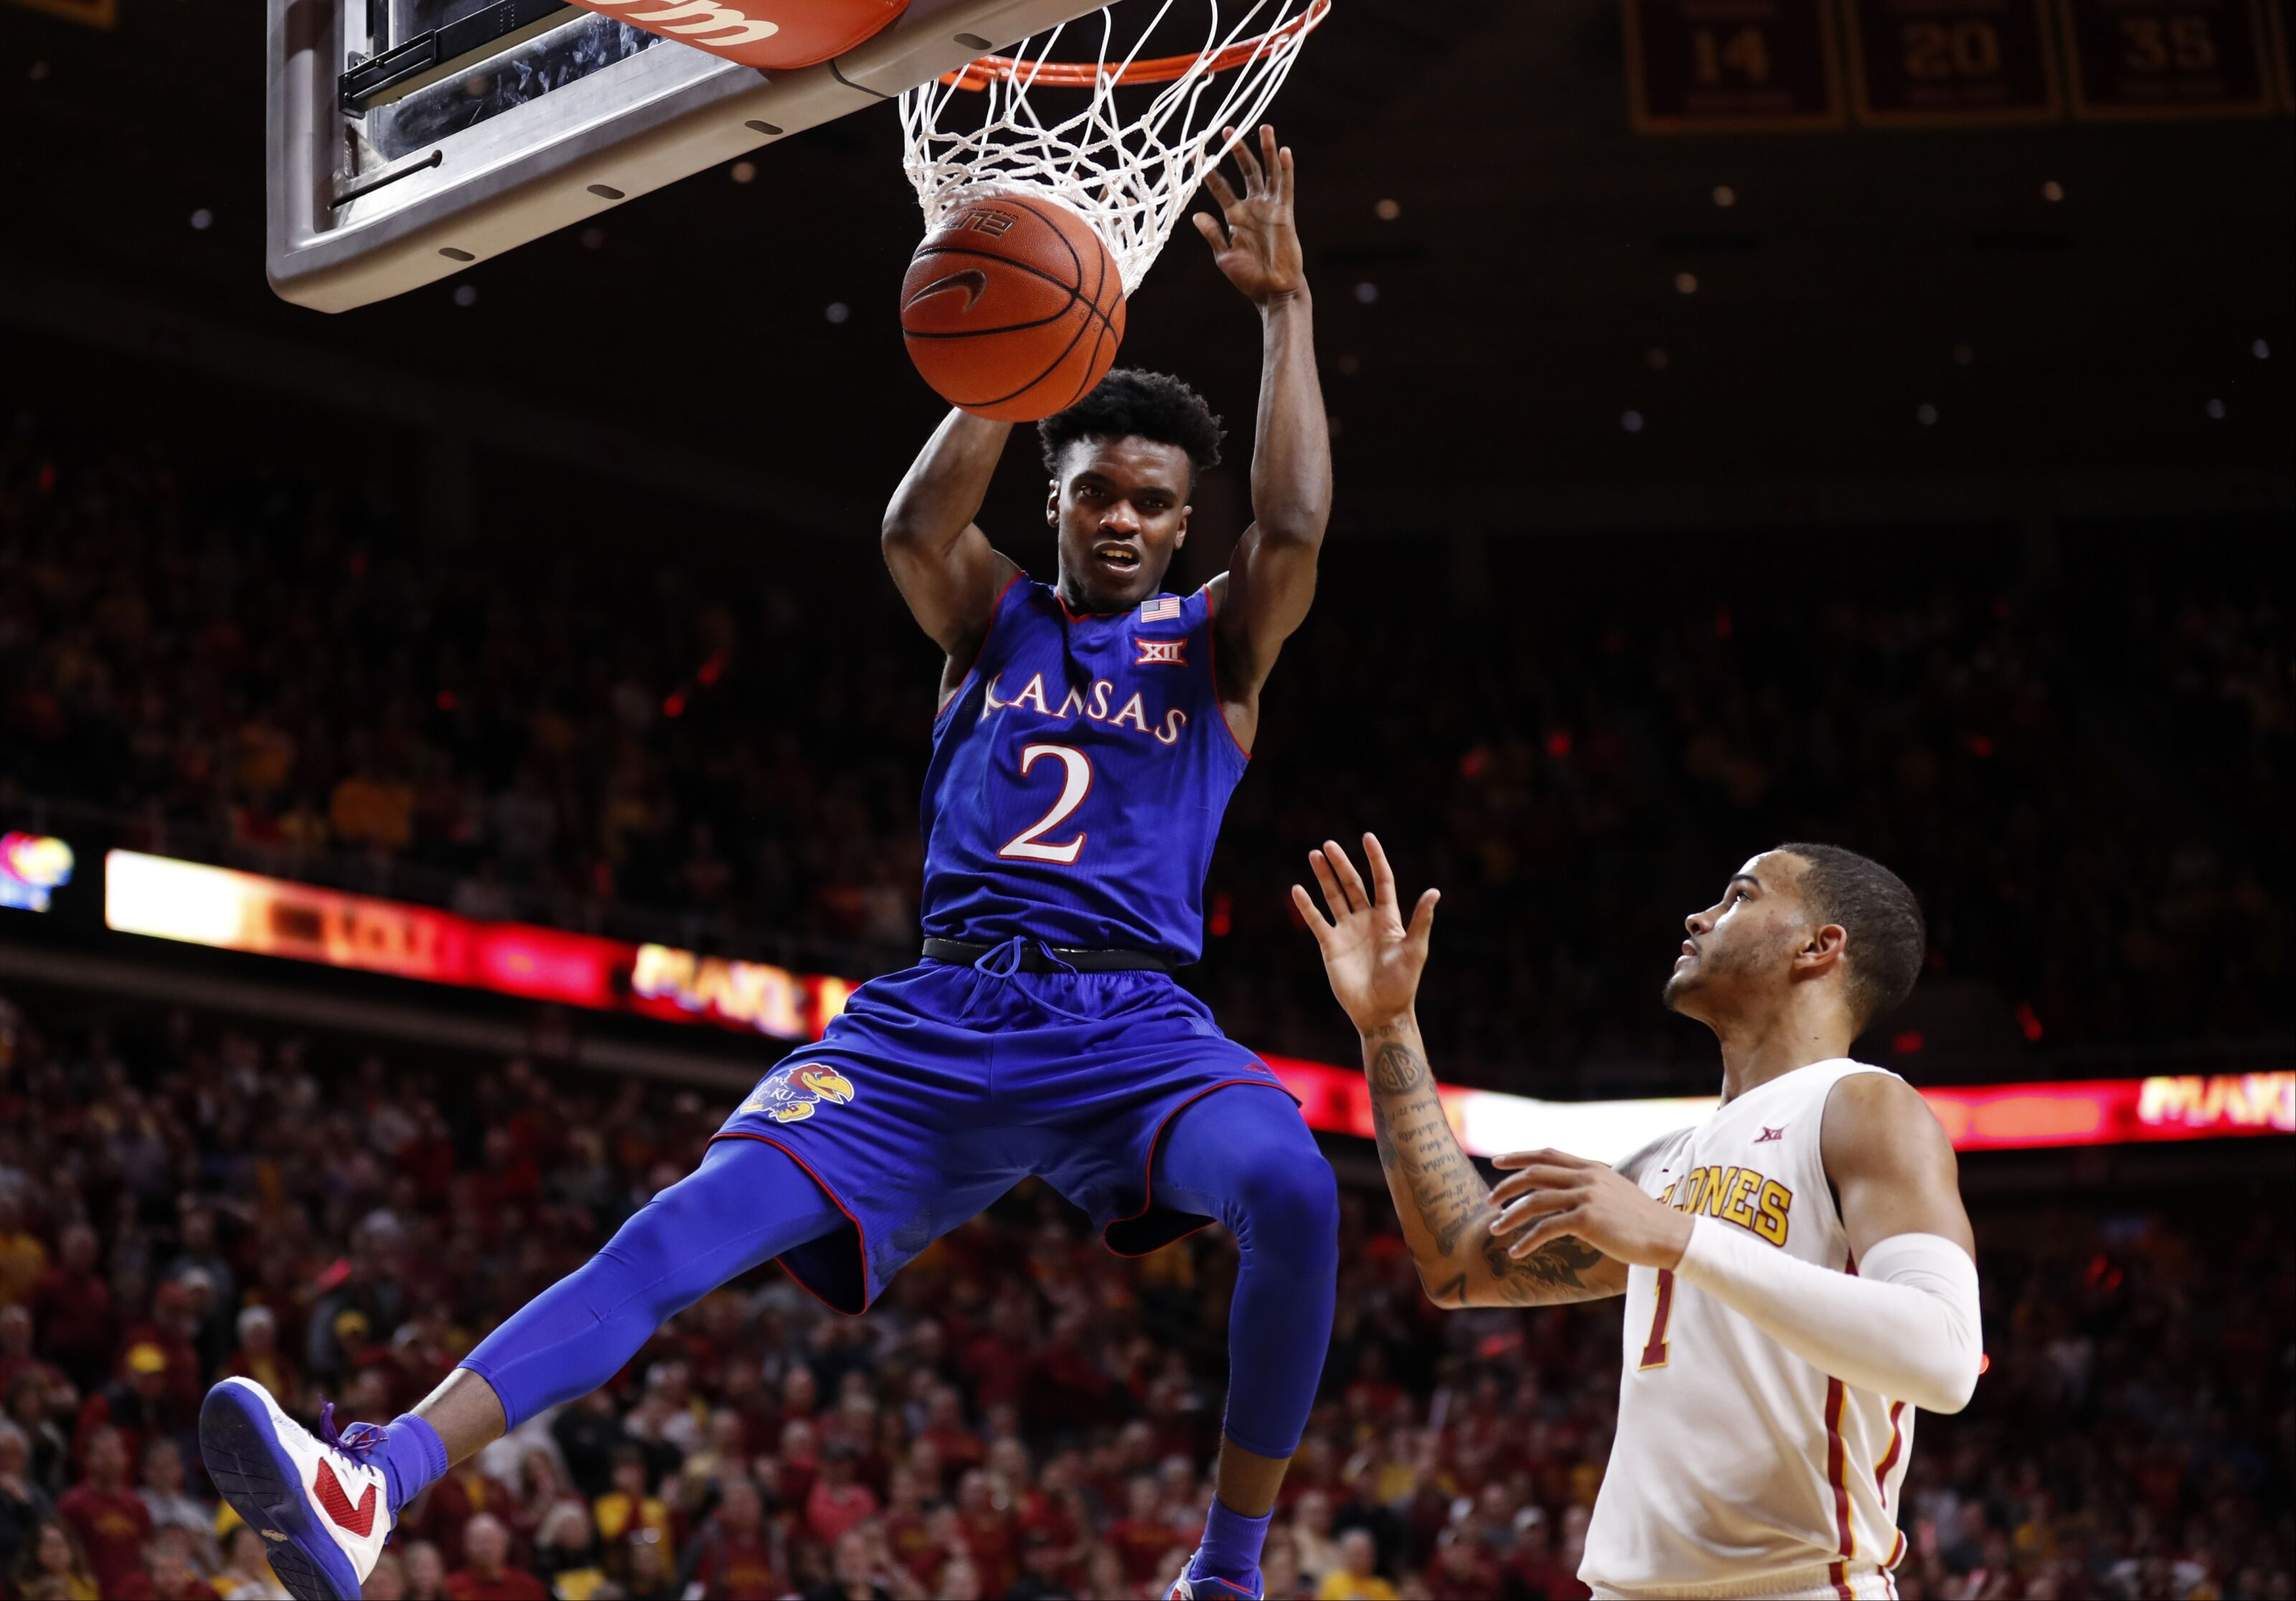 Preview: No.5 Kansas looks for second road win against struggling Mountaineers